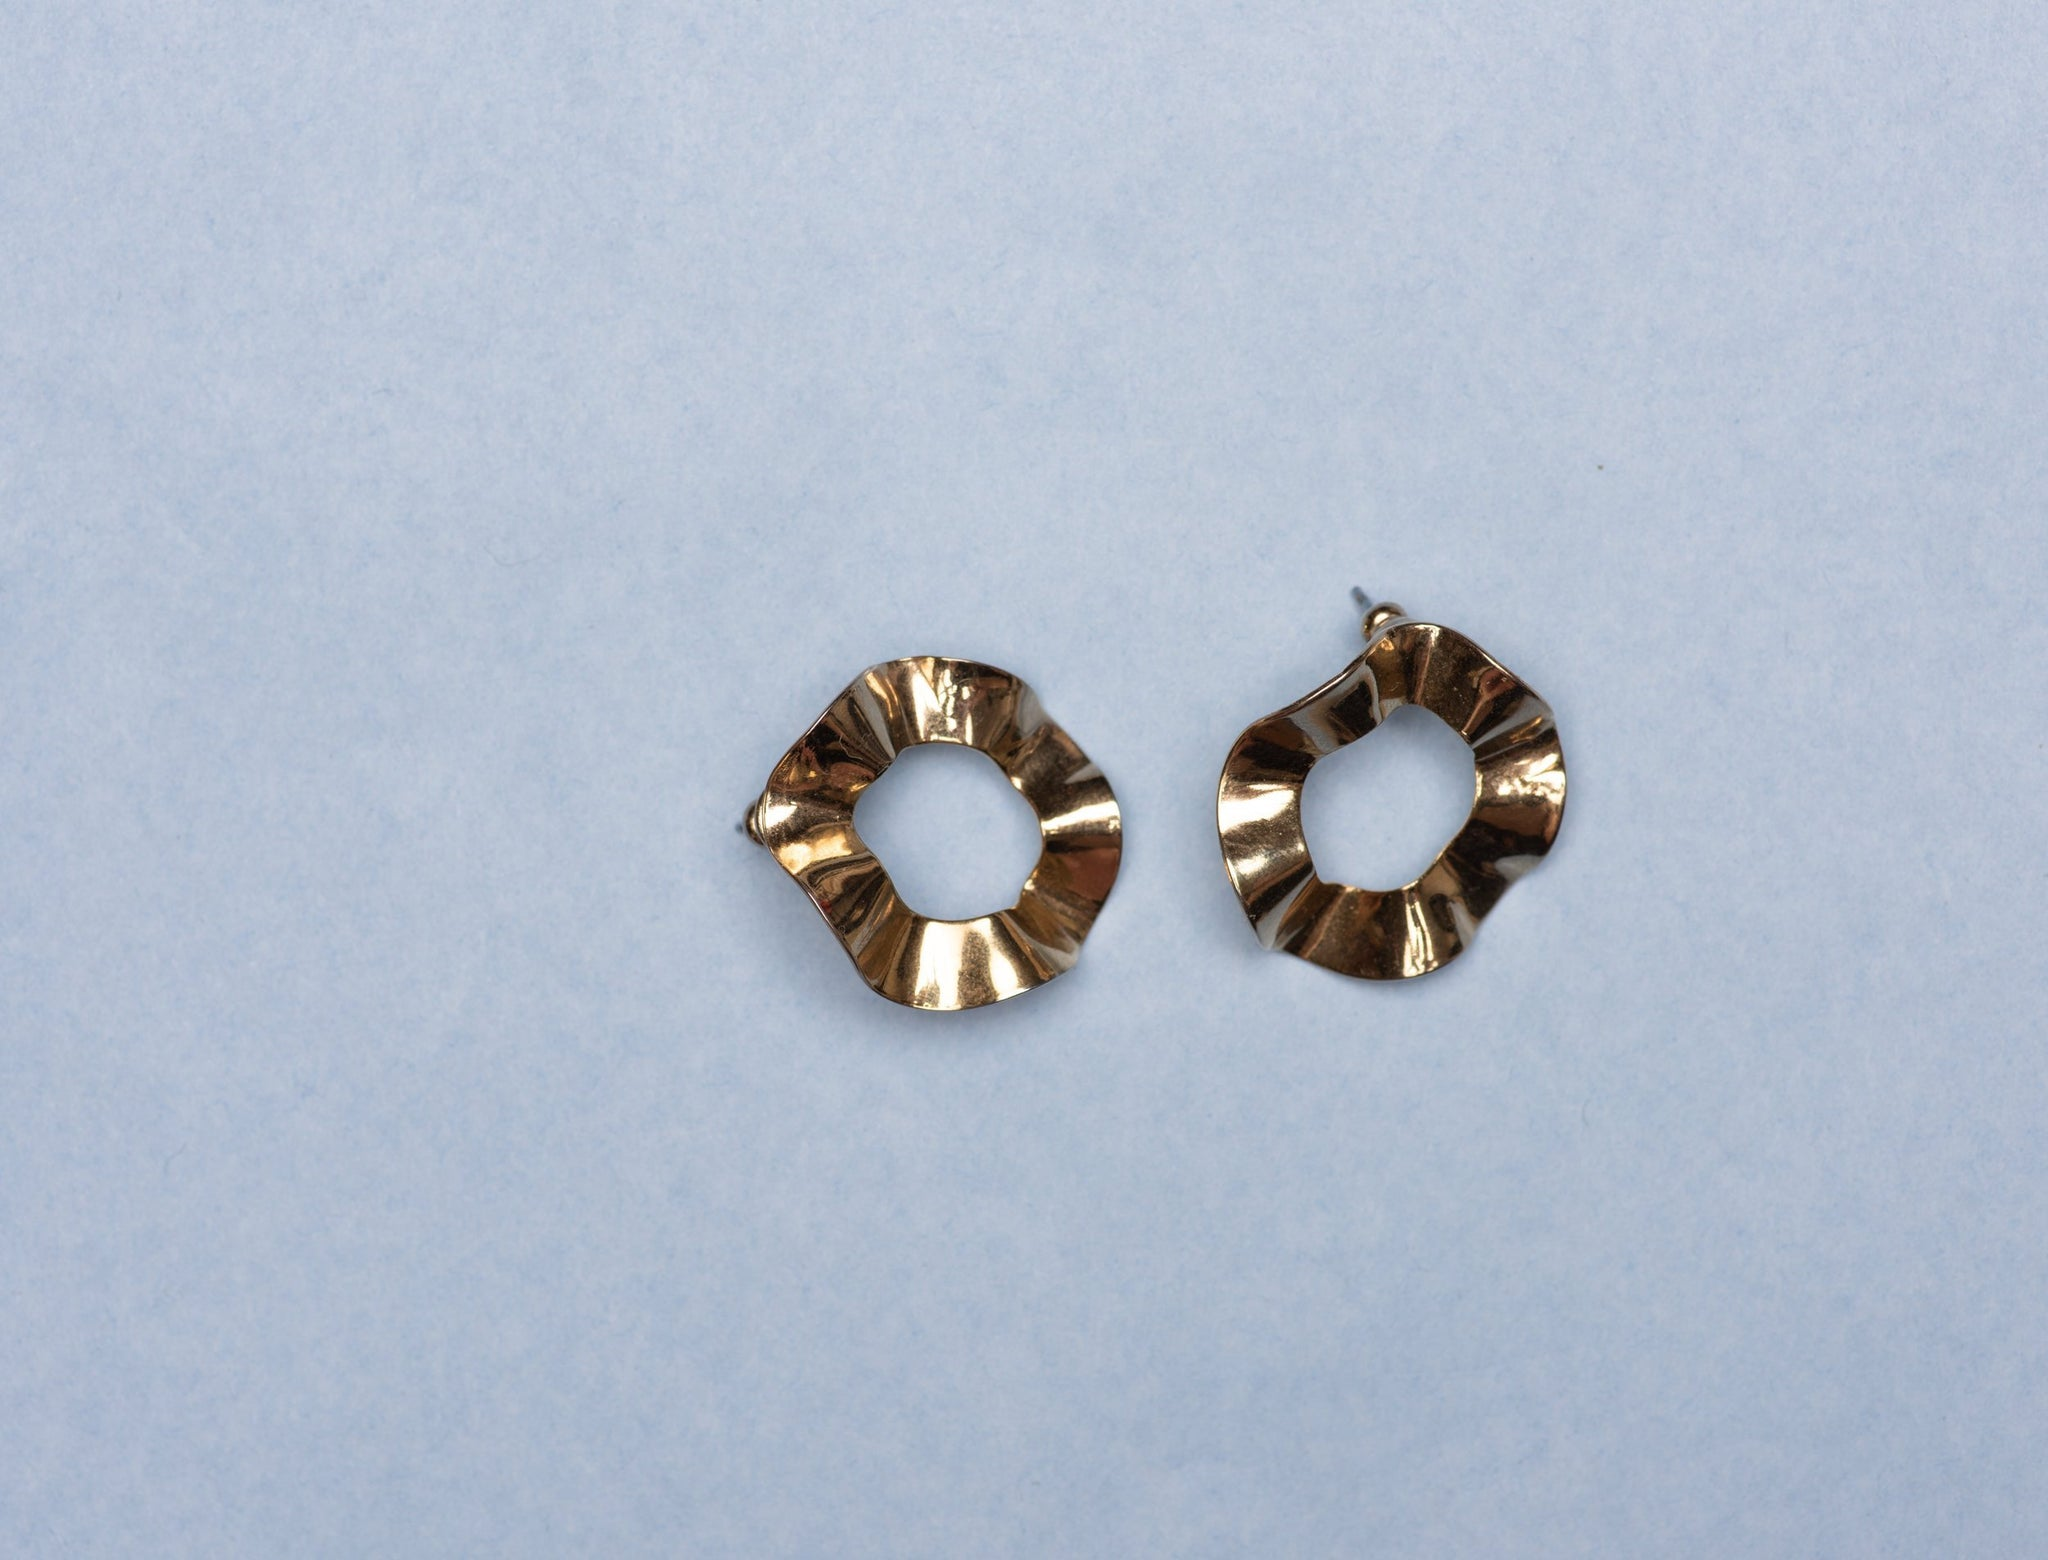 Vintage Gold Wavy Circle Earrings - Closed Caption